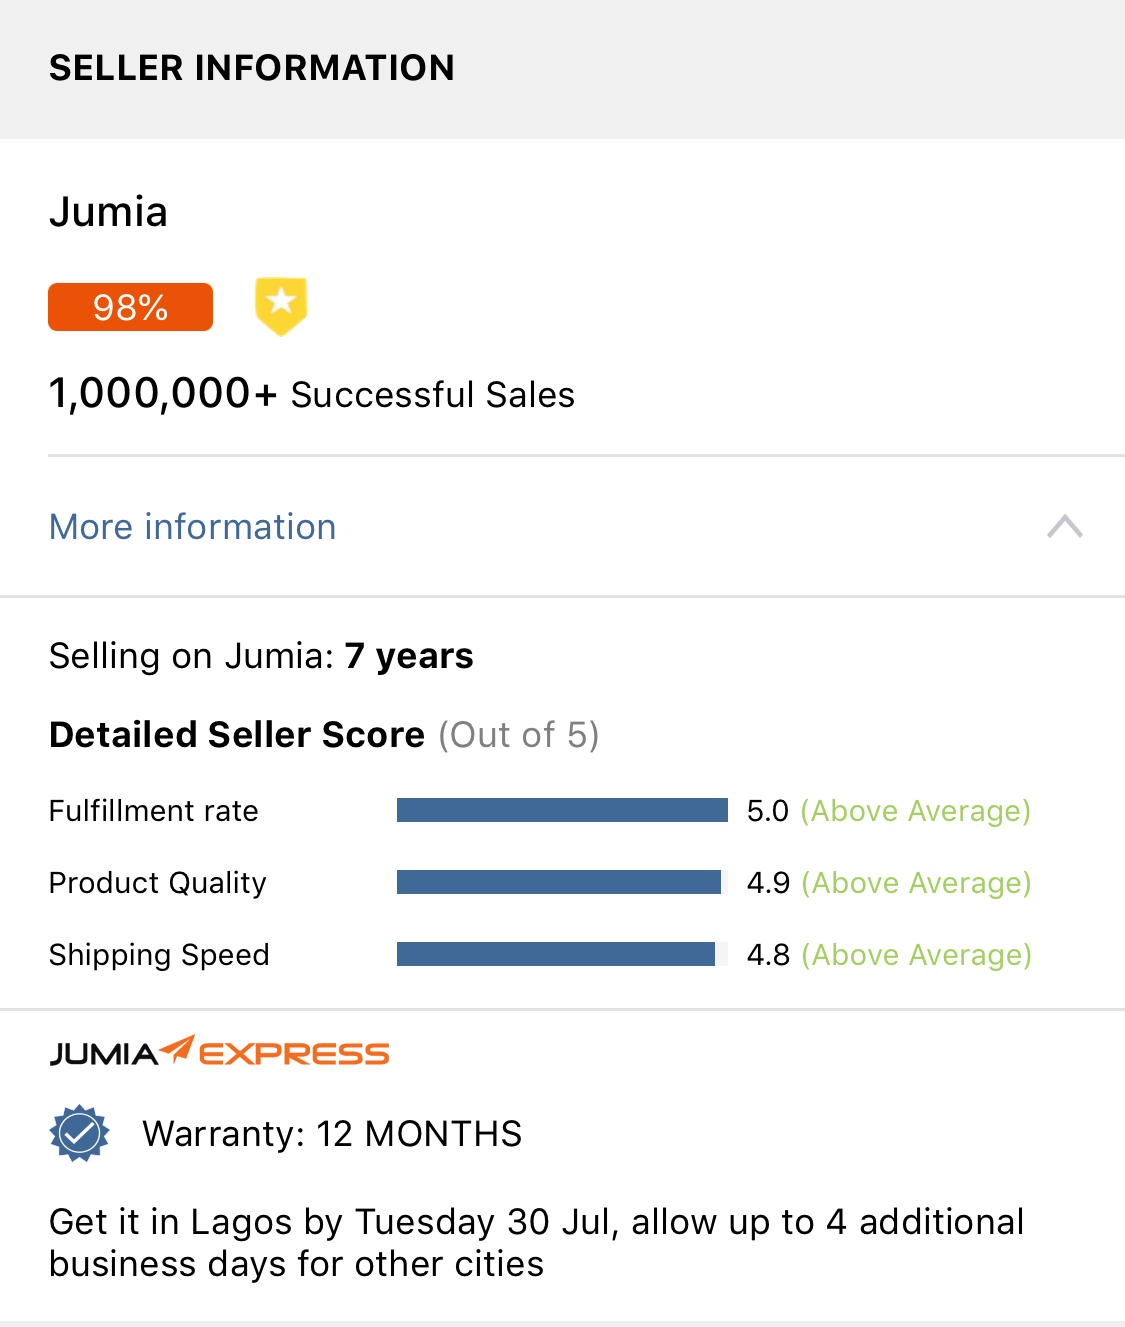 Jumia Seller Information